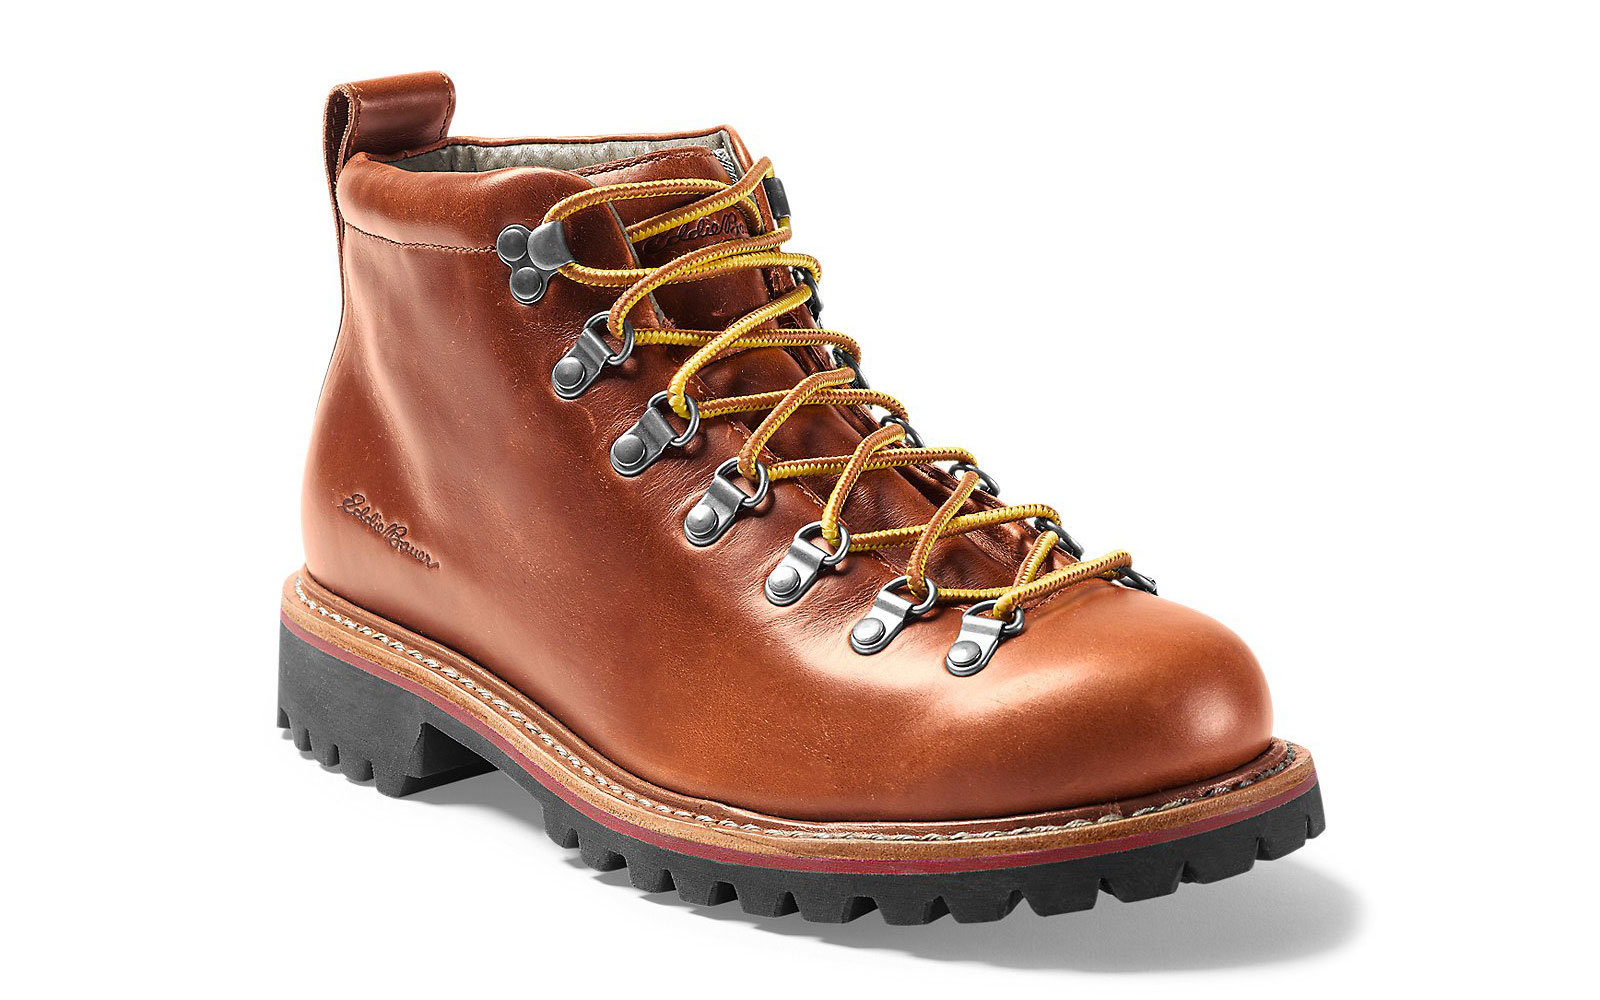 Eddie Bauer hiking boots